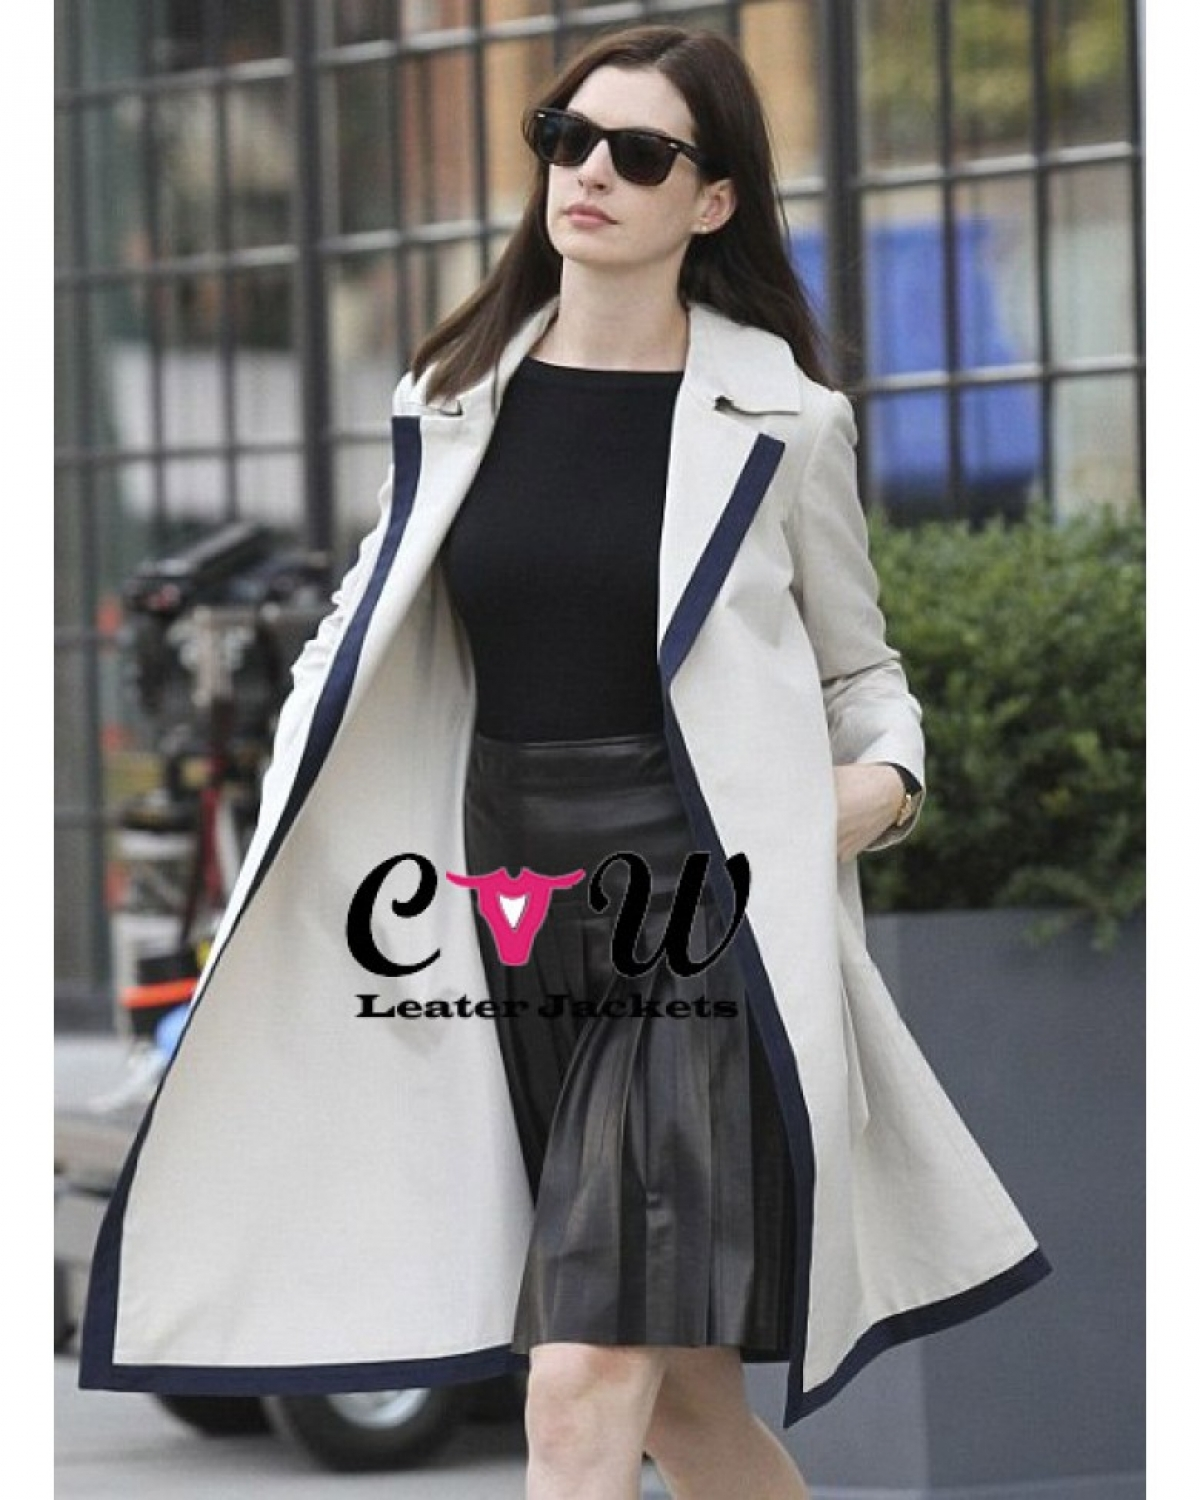 Anne Hathaway Real Name: The Intern Anne Hathaway Trench White Coat